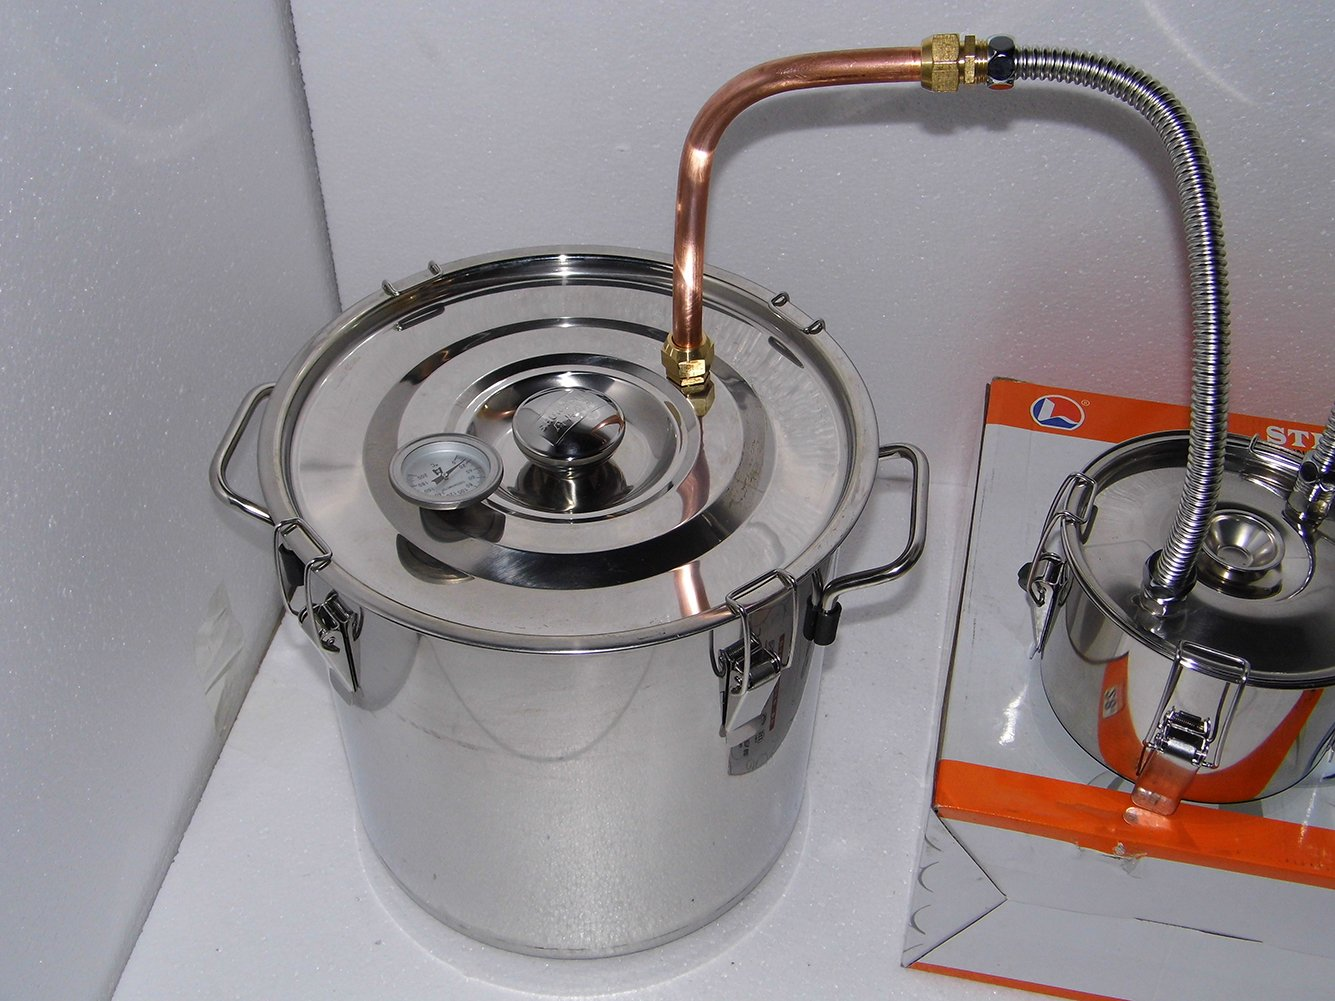 OLizee 5 Gal Stainless Steel Water Alcohol Distiller Copper Tube 18L Moonshine Still Spirits Boiler Home Brewing Kit with Thumper Keg by OLizee (Image #2)